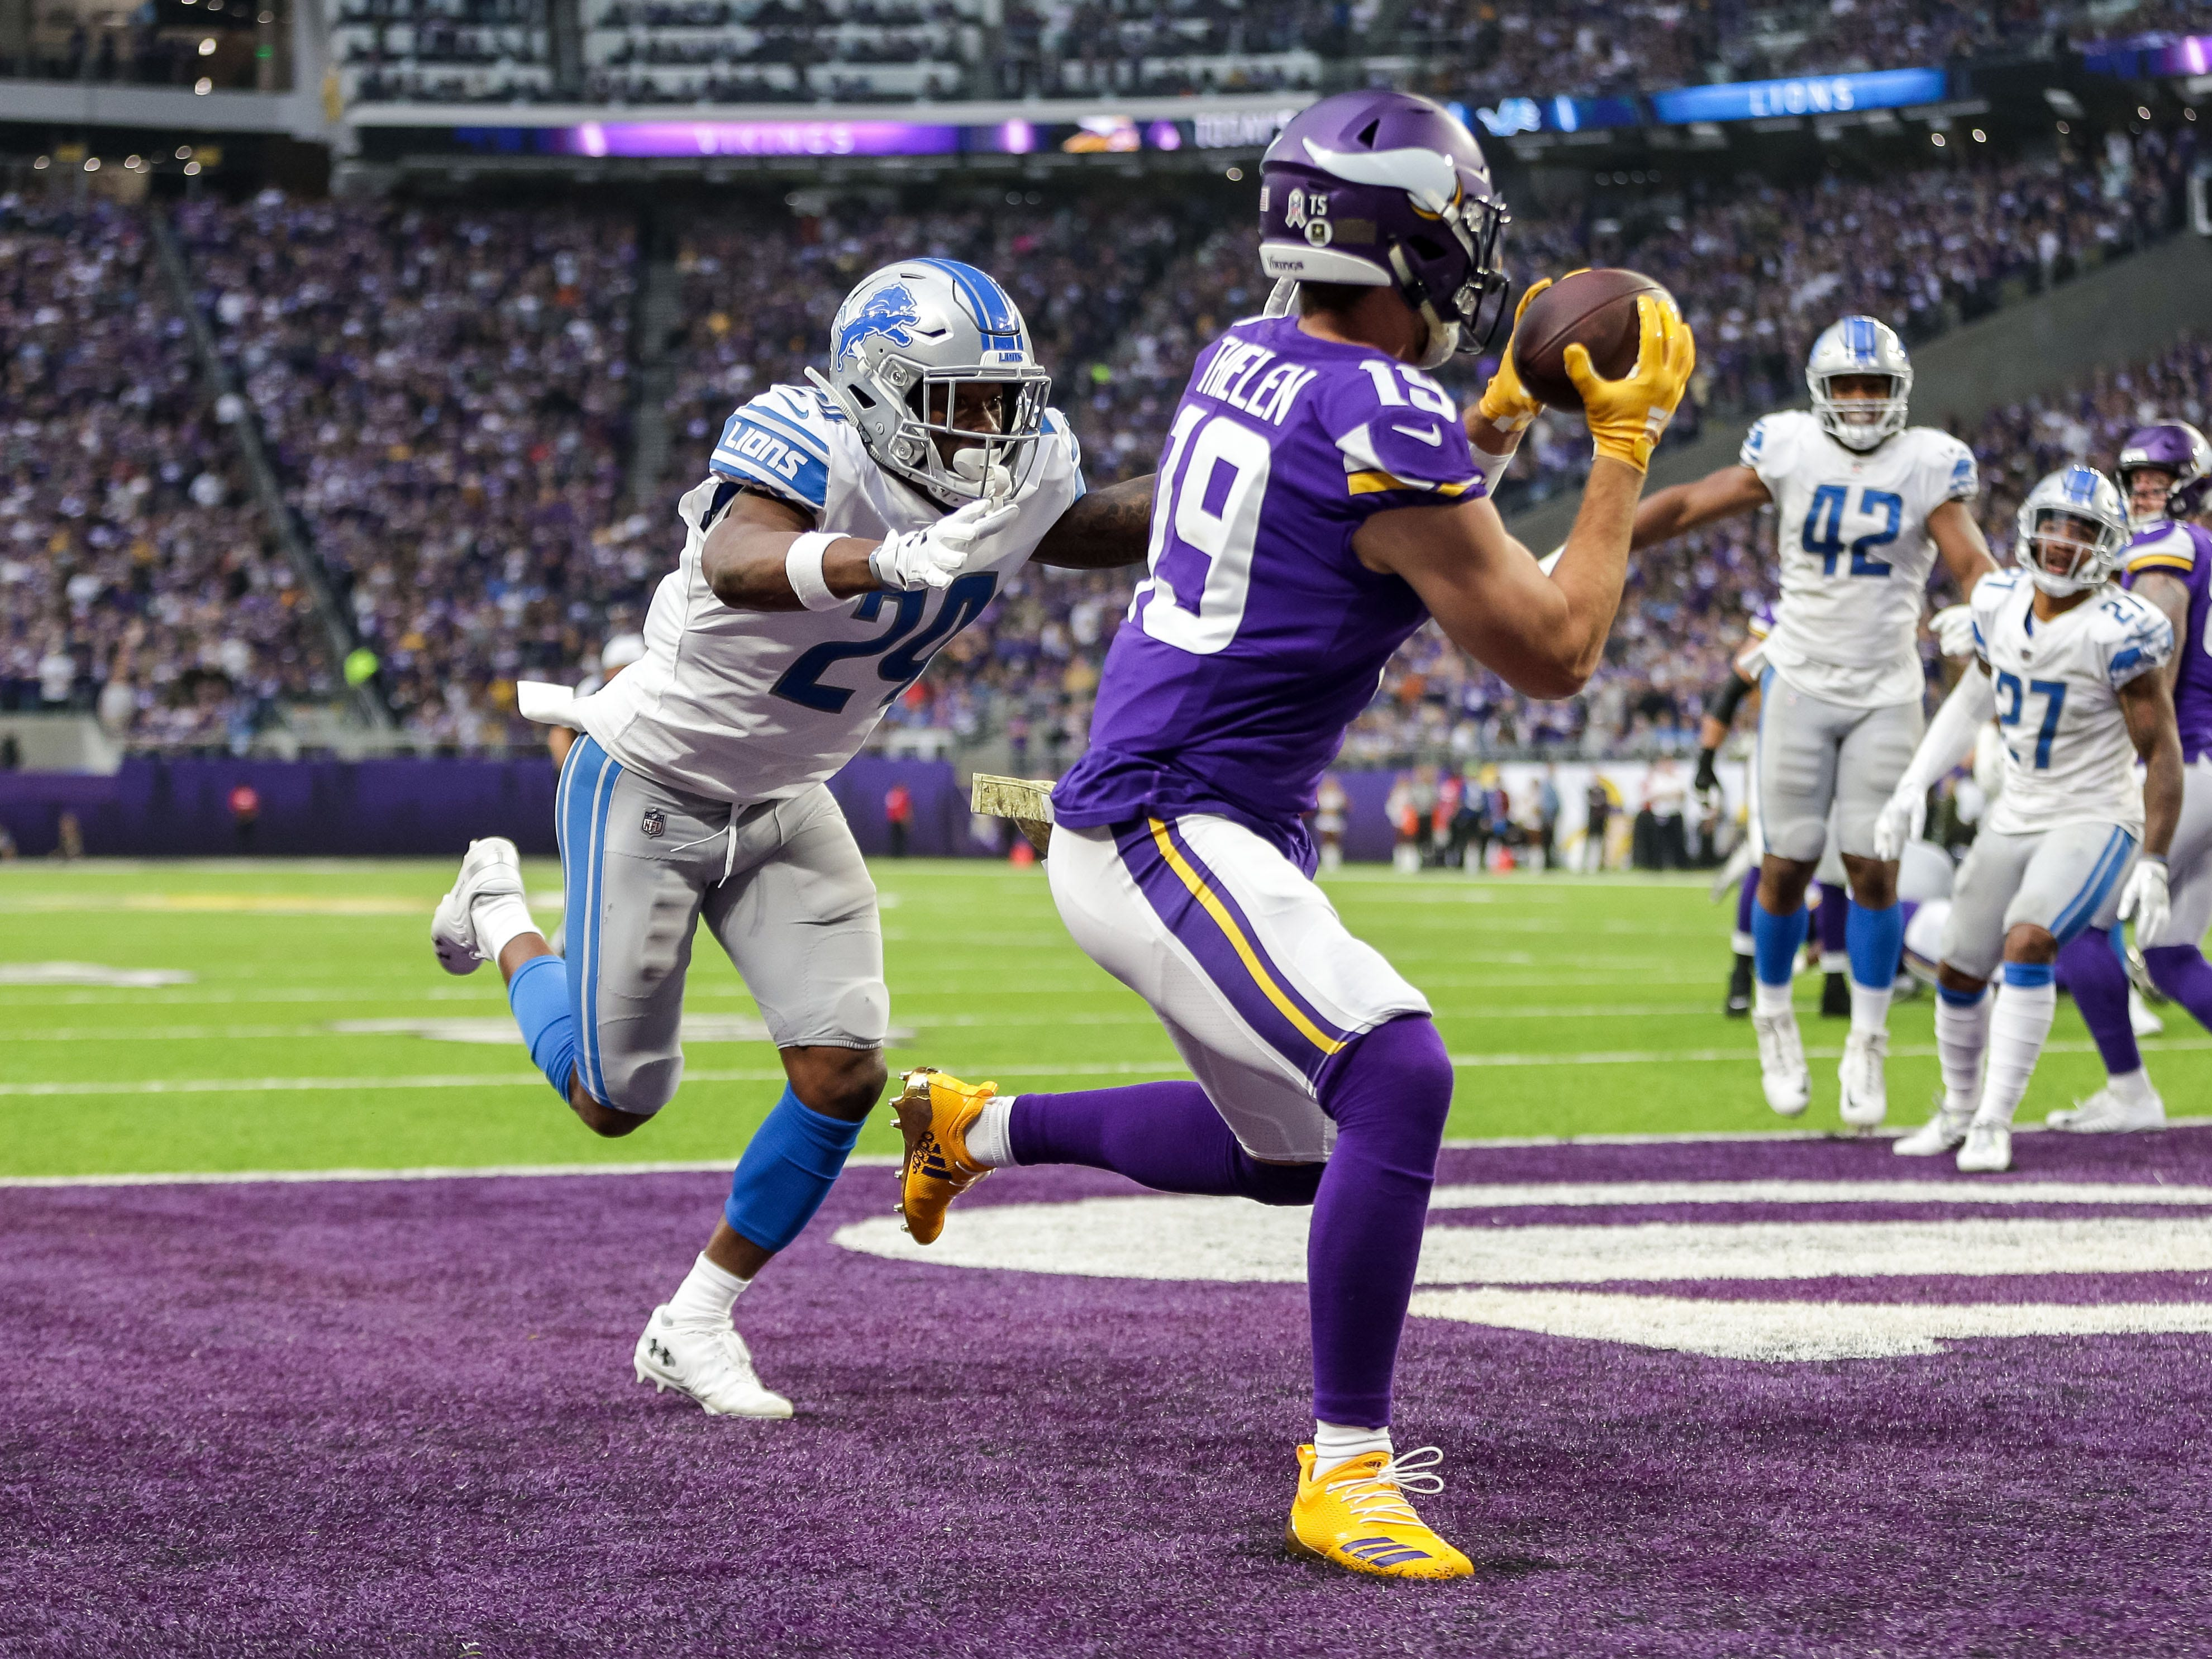 Minnesota Vikings wide receiver Adam Thielen (19) catches a touchdown pass in front of Detroit Lions cornerback Nevin Lawson (24) during the second quarter at U.S. Bank Stadium.